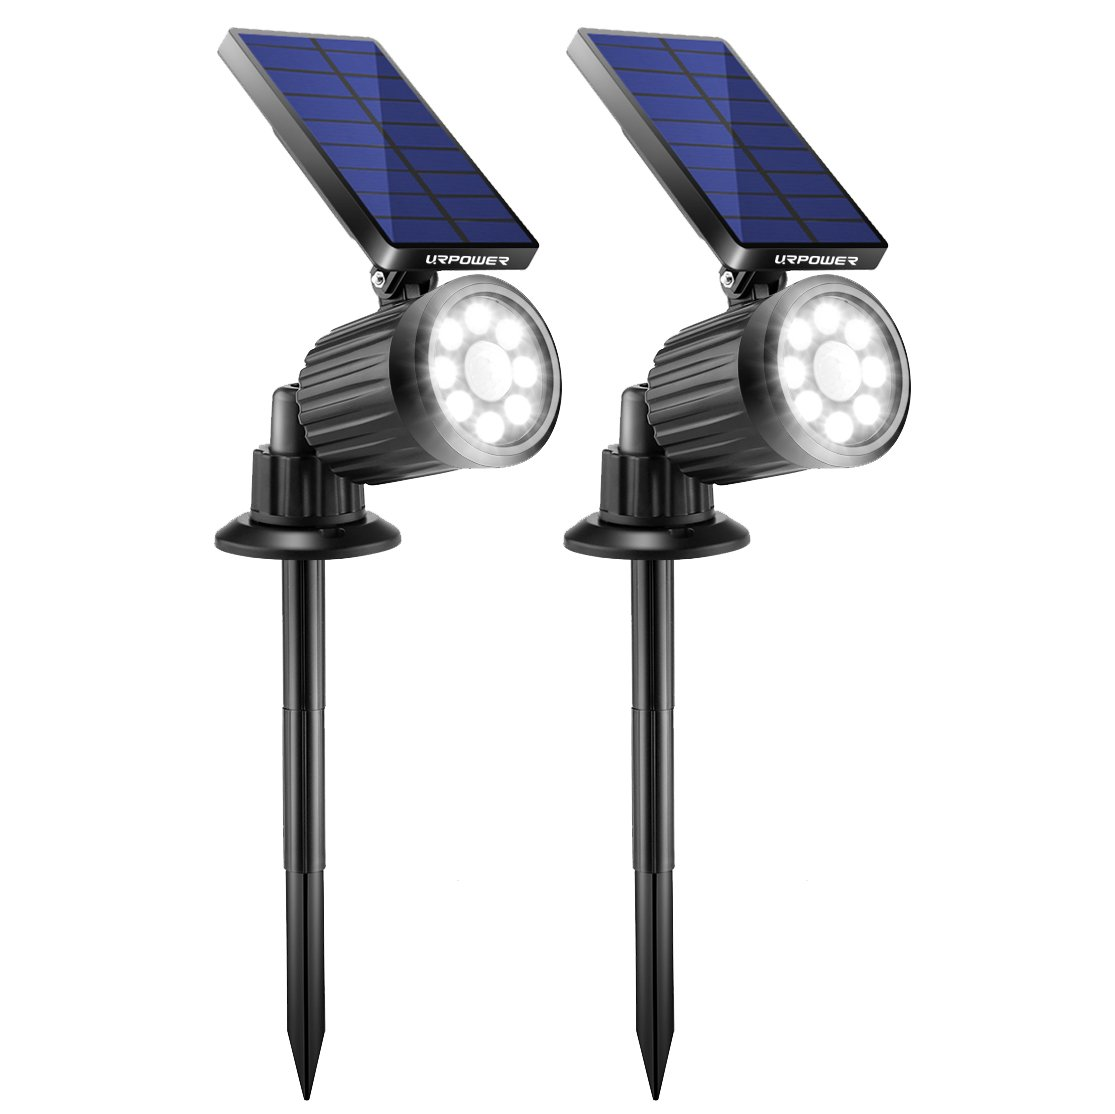 URPOWER Solar Lights Outdoor, 4th Generation Solar Spotlight 2-in-1 Waterproof Motion Sensor Energy-saving Solar Light Solar Landscape lights Outdoor Security Wall Light for Garden, 2Pack (Cool White) by URPOWER